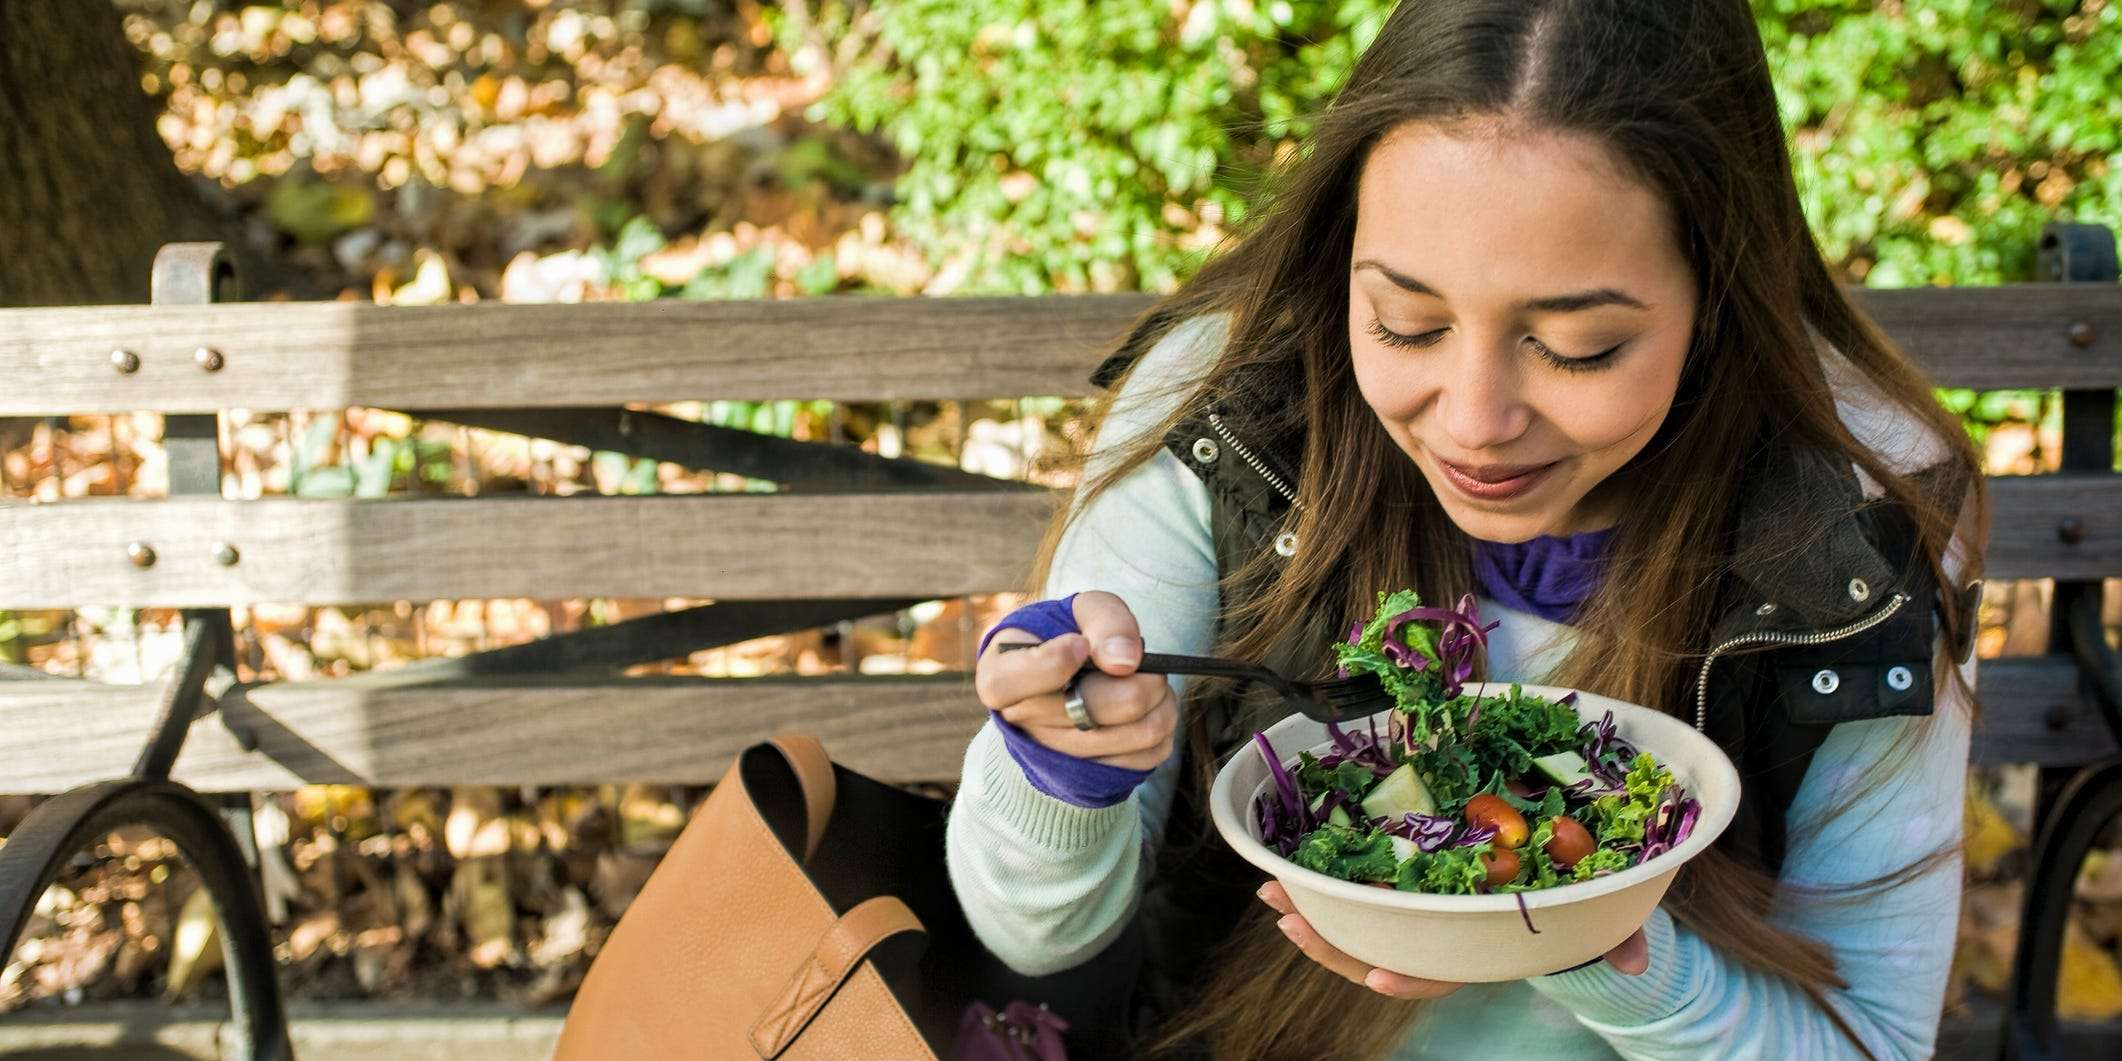 How to kickstart healthy eating with this 1-week Mediterranean diet meal plan recommended by a registered dietitian